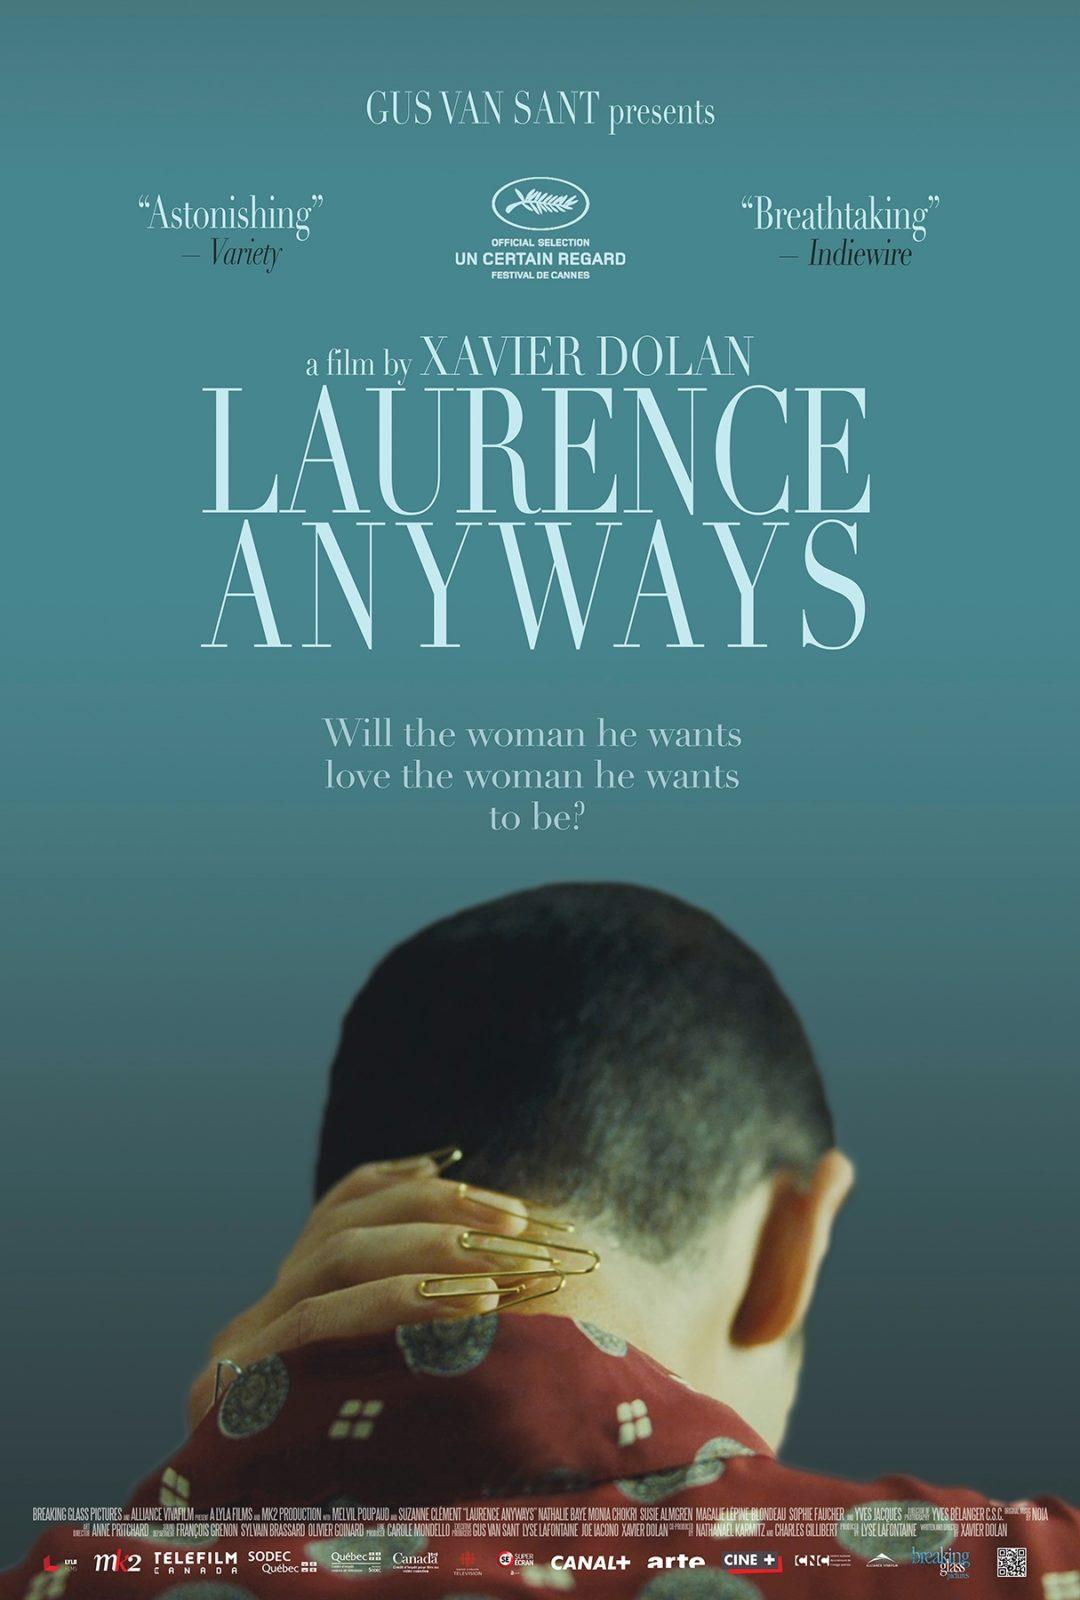 Laurence Anyways - theatrical poster QUOTES no certain regard no overlap